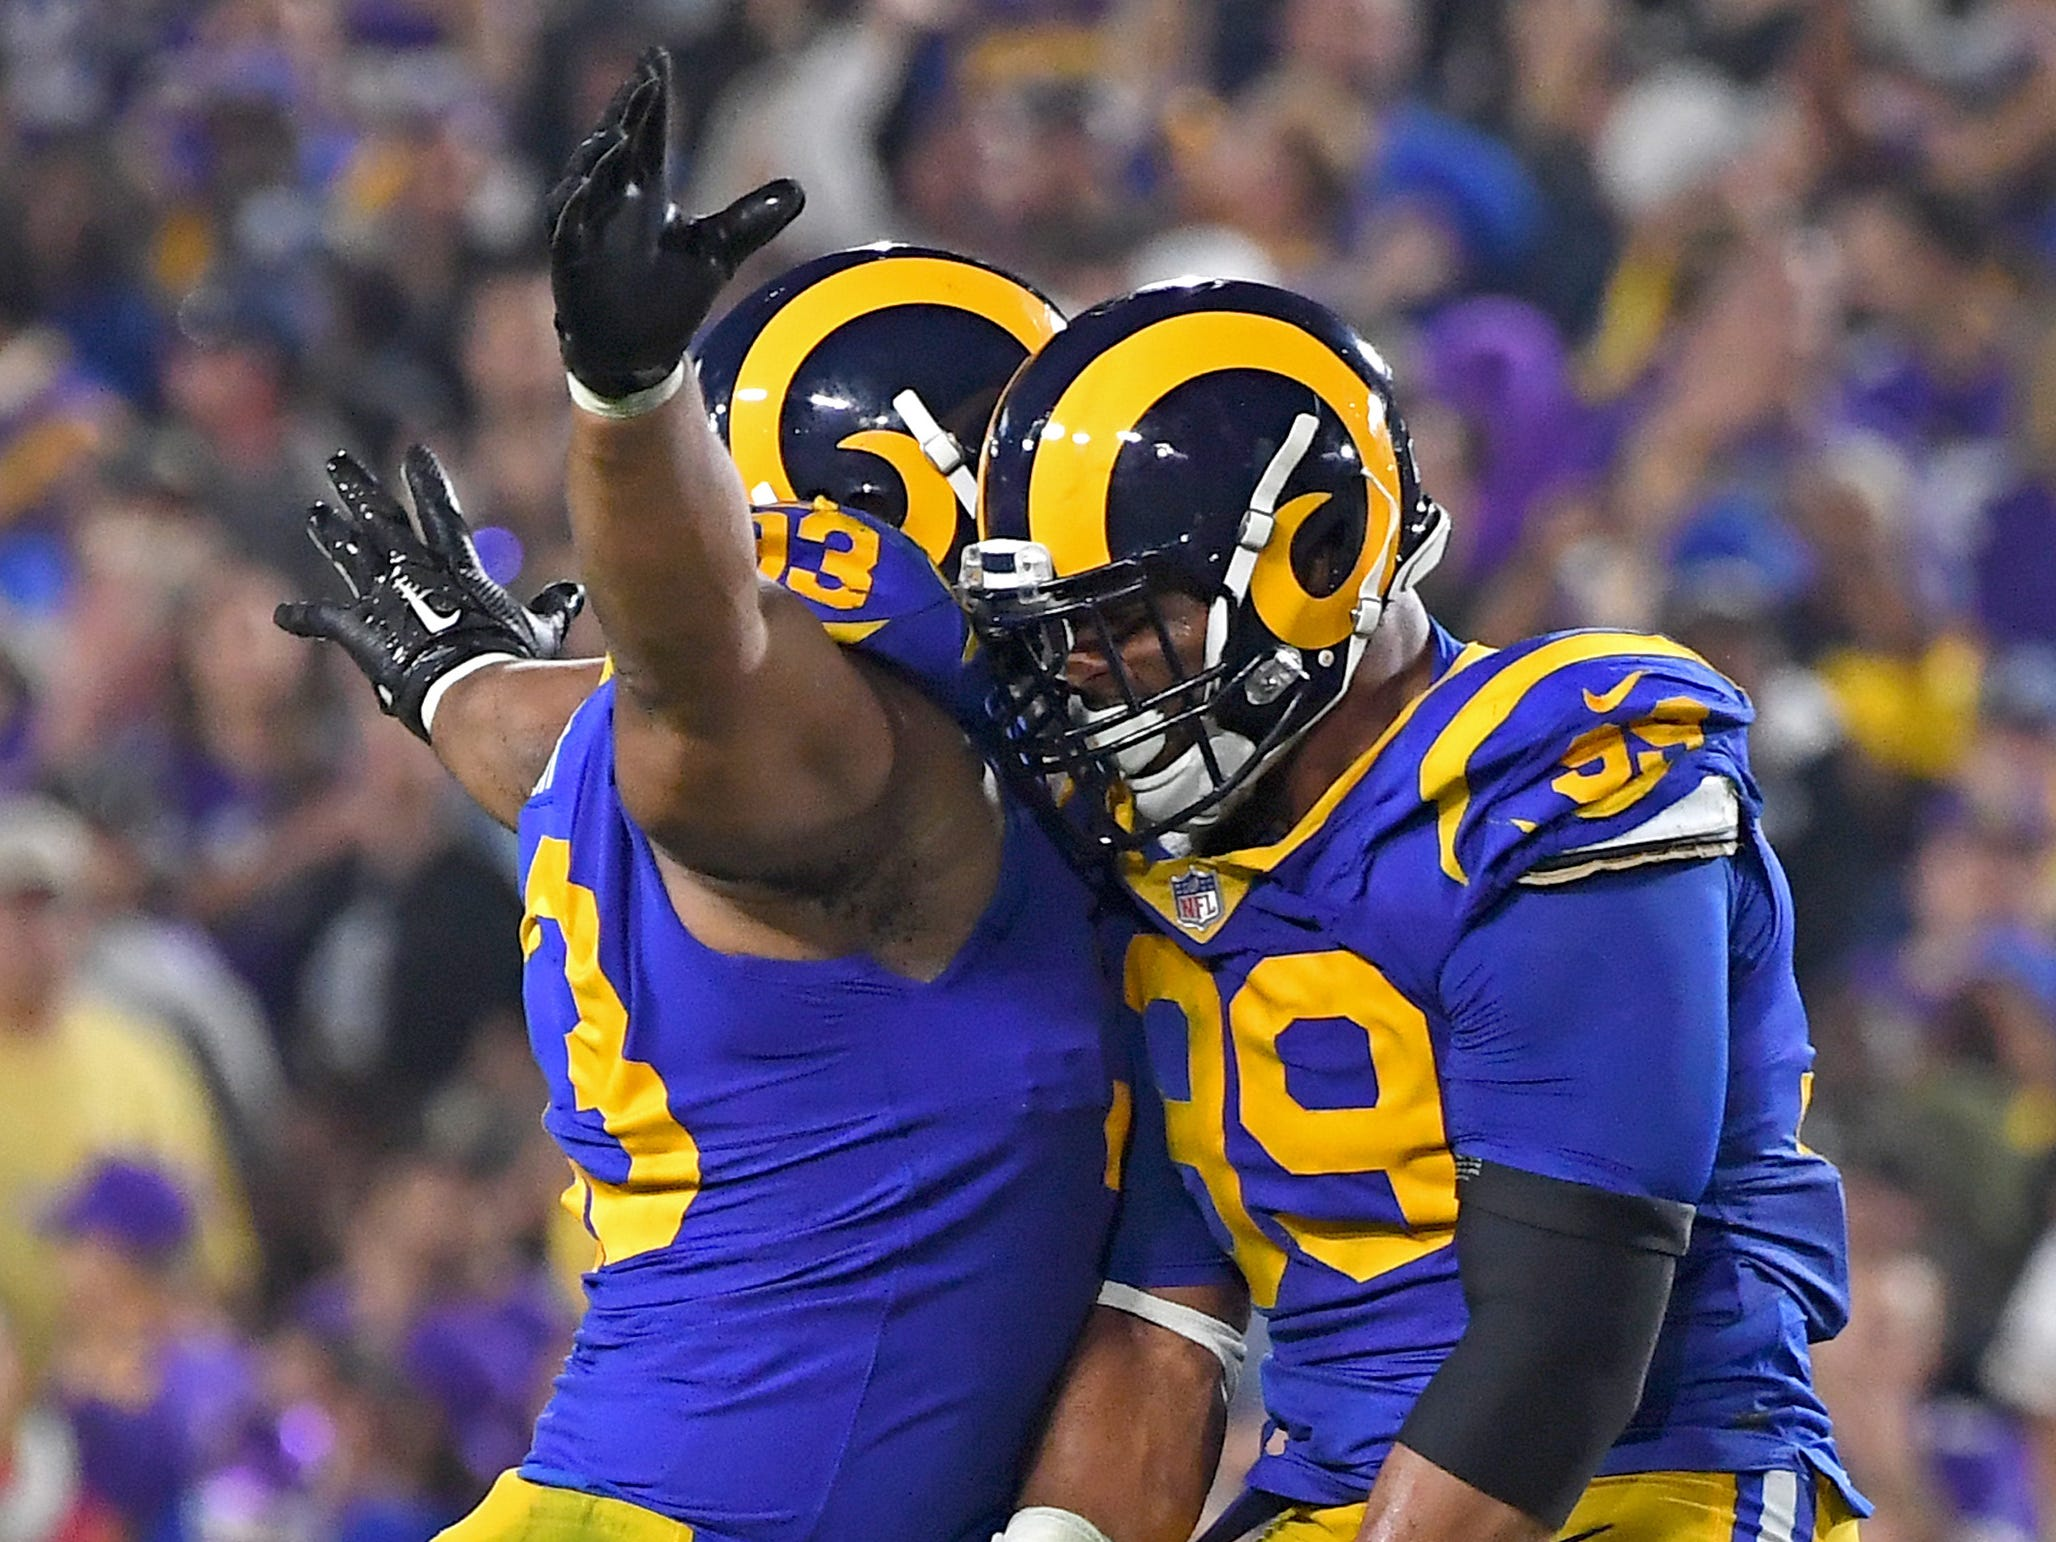 The Los Angeles Rams' Ndamukong Suh (left) and Aaron Donald (99) leap in the air and celebrate after a sack in the fourth quarter against the Minnesota Vikings.